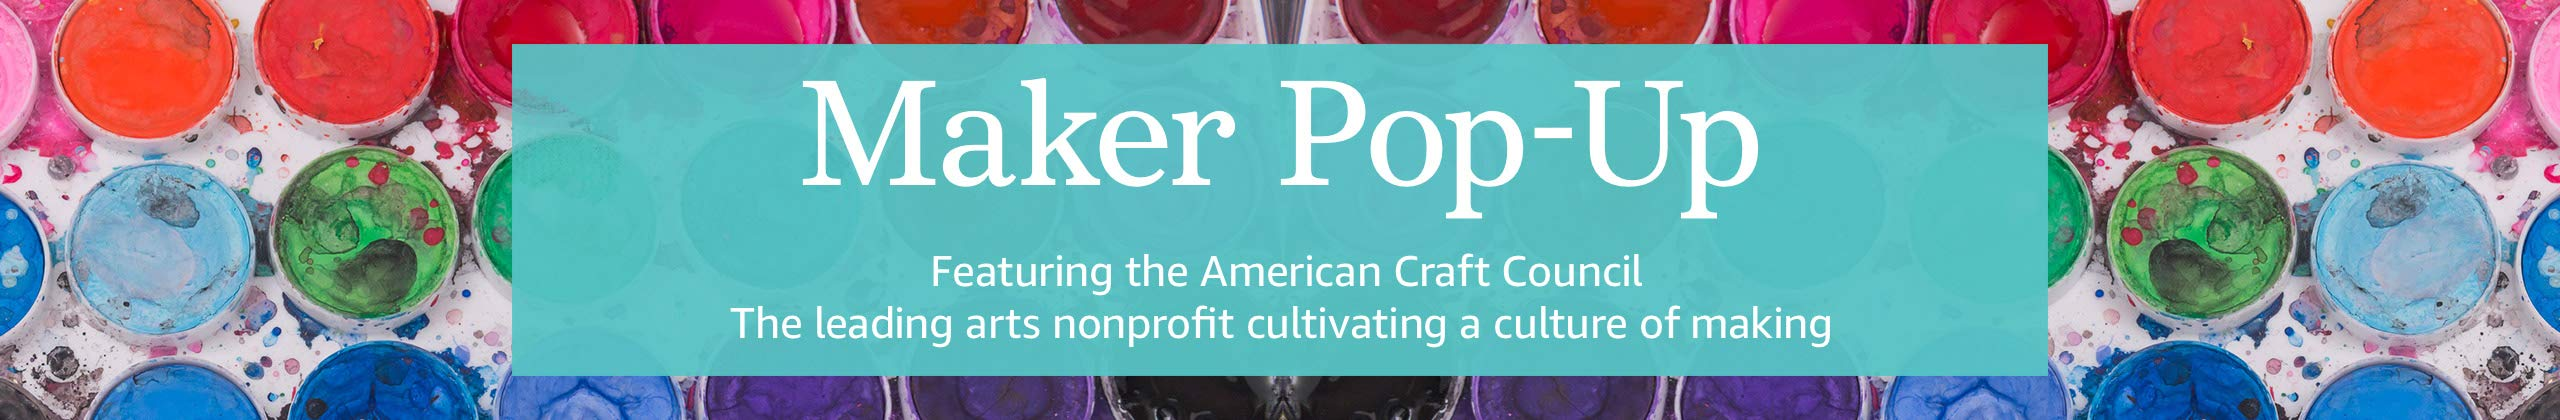 Maker Pop-Up Featuring American Craft Council